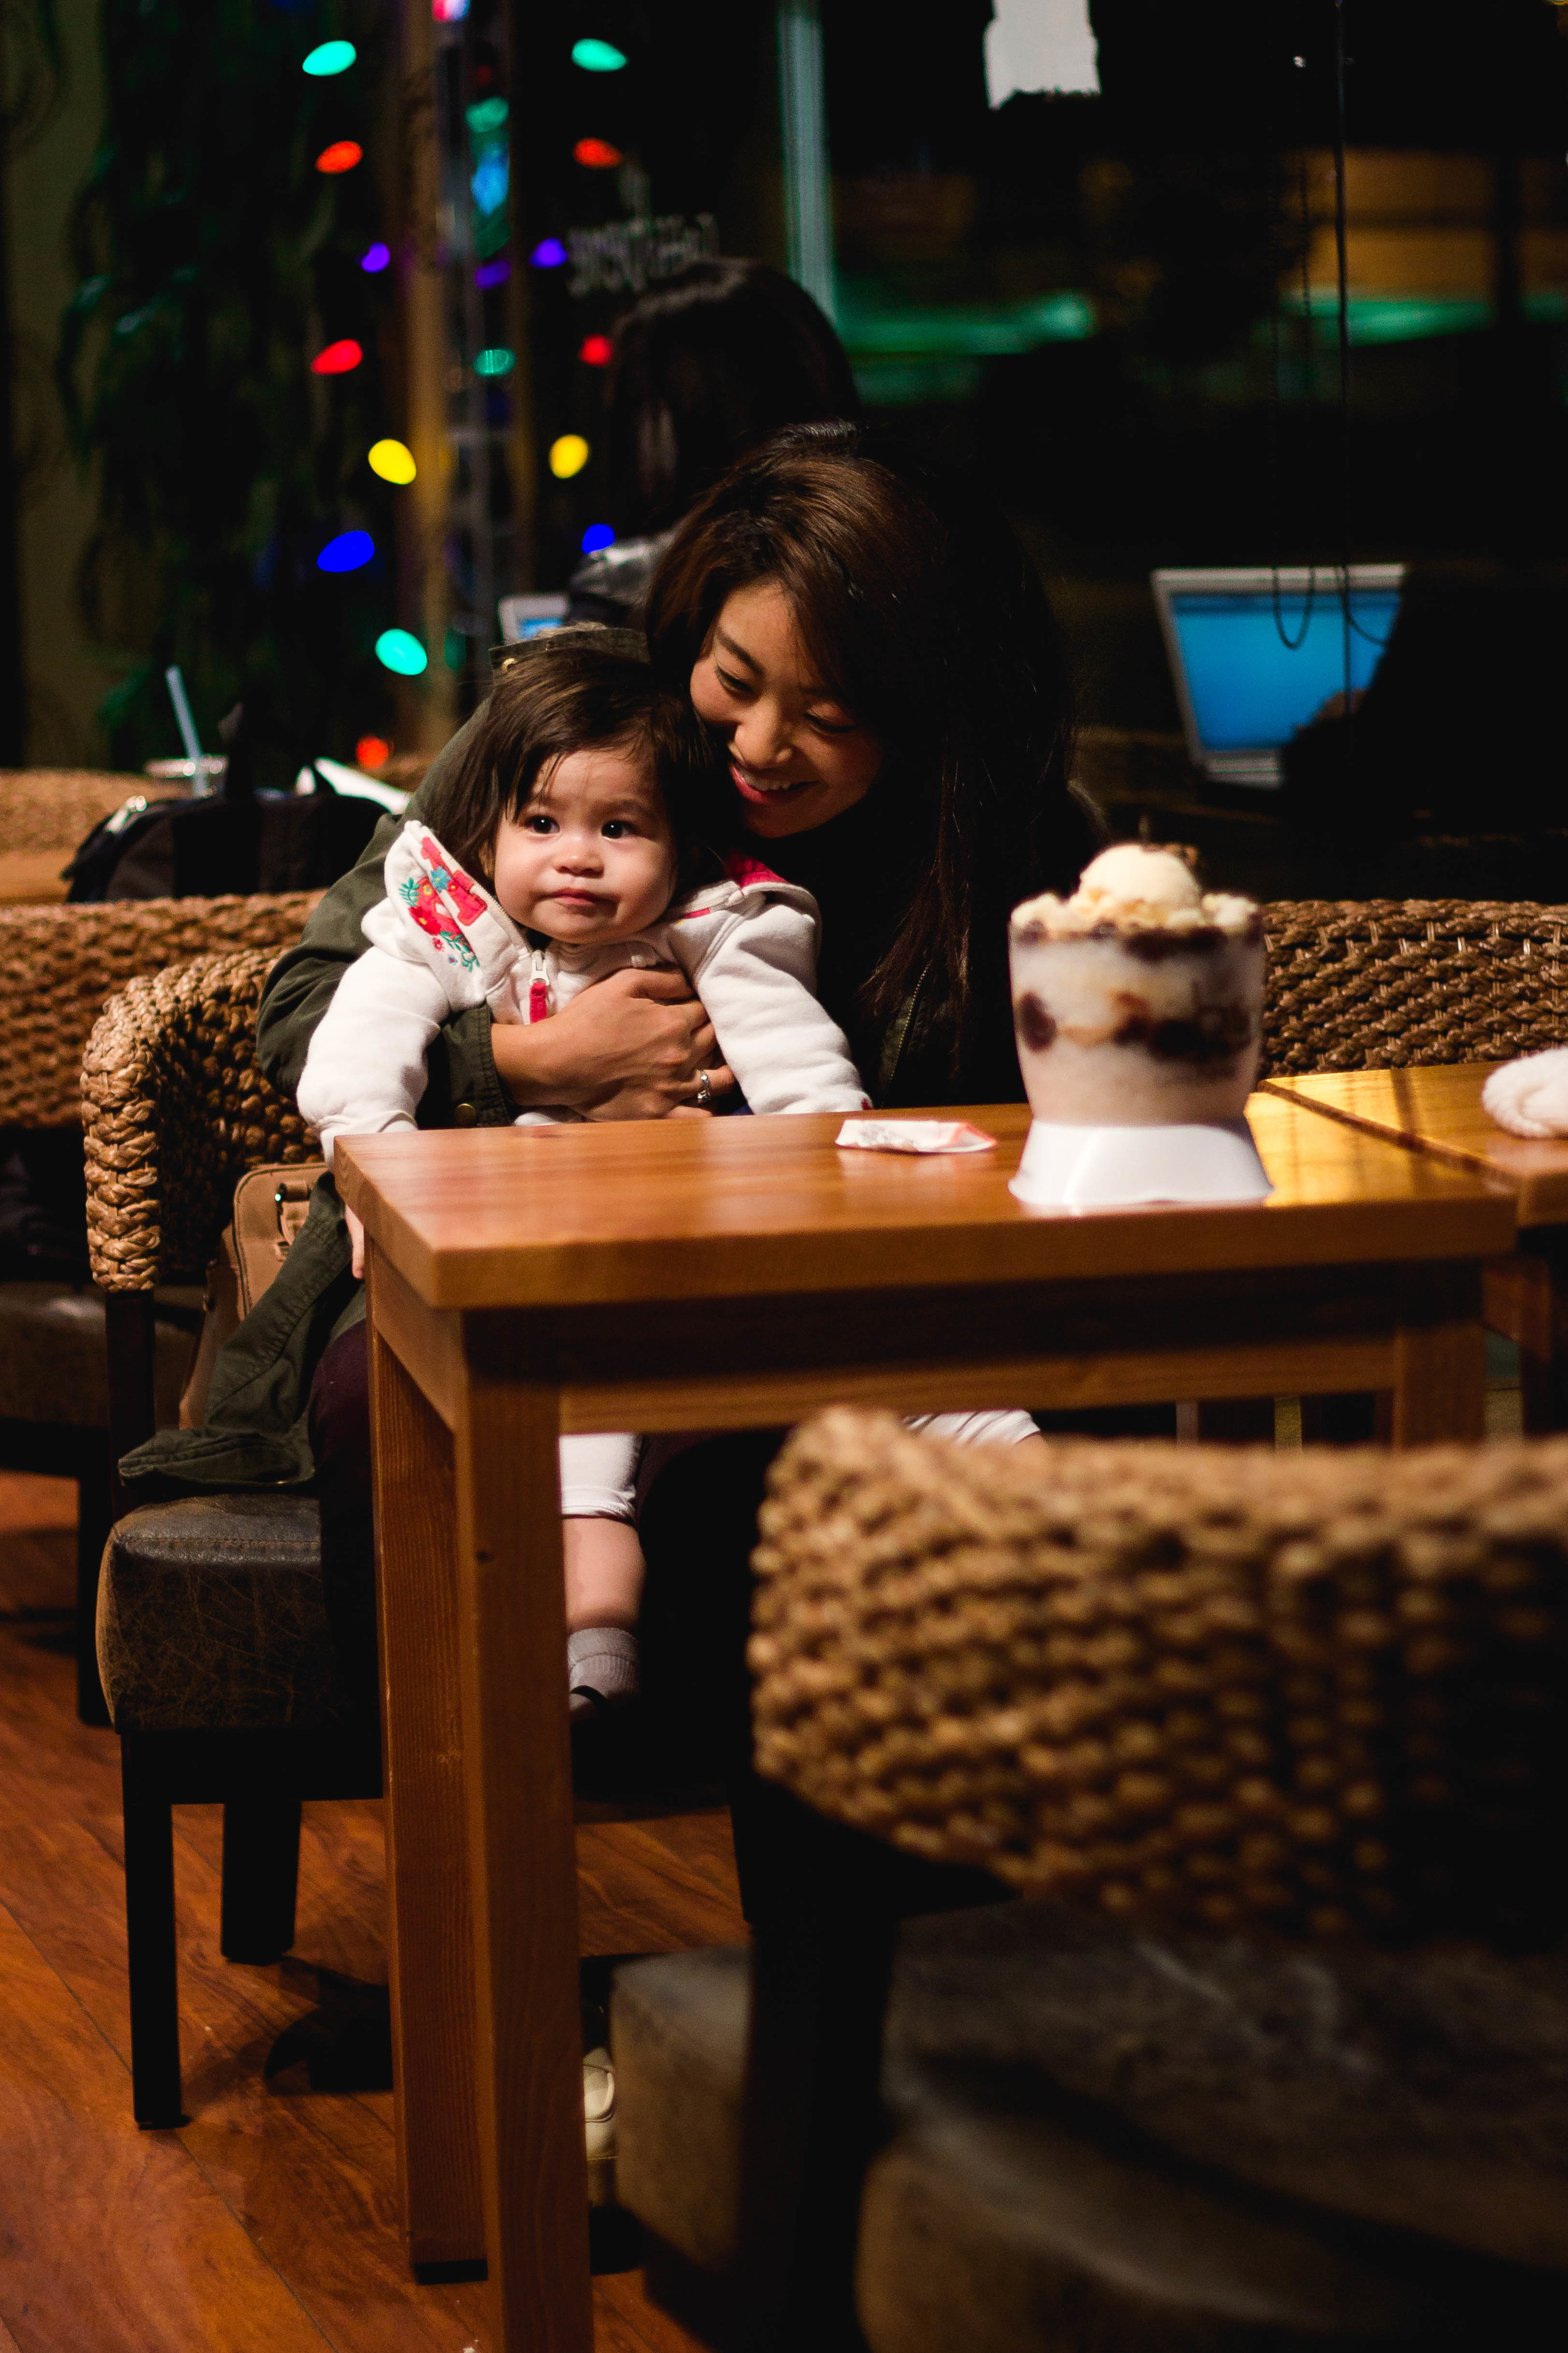 Selah and me at Caffe Bene in Gardena | fit for the soul